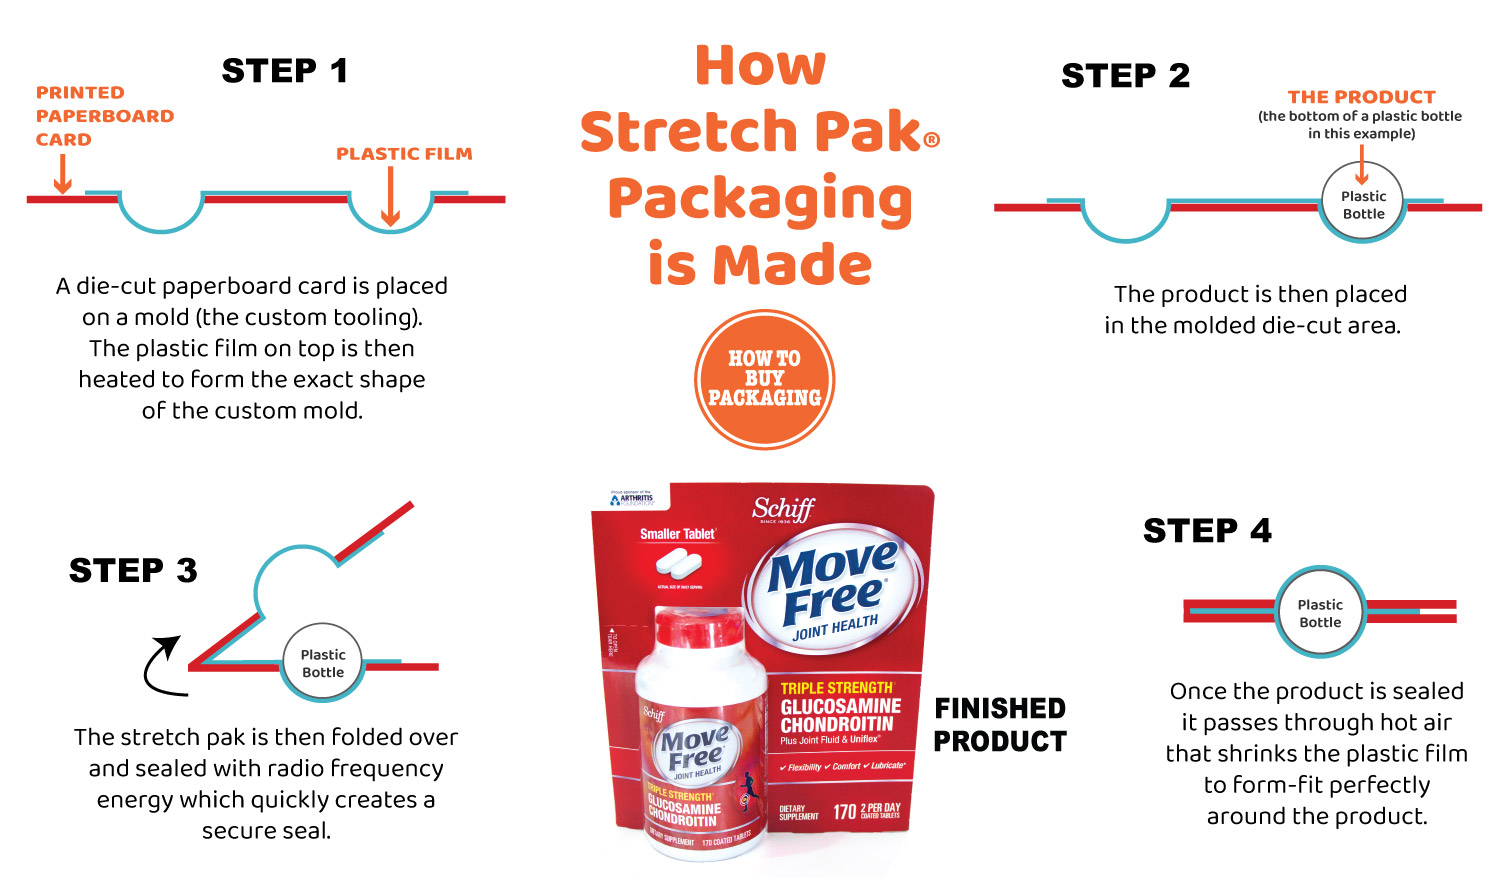 The Process of Making Stretch Pak Packaging